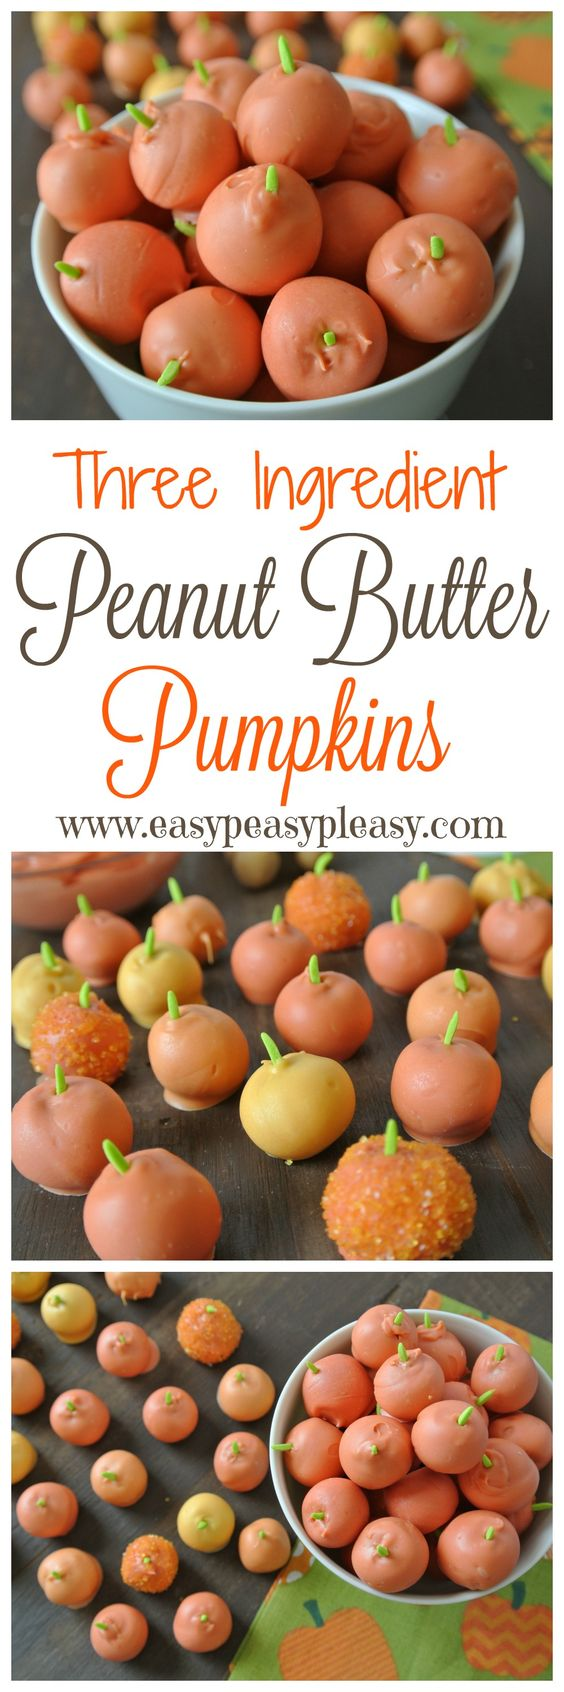 Easy 3 ingredient Peanut Butter Pumpkins Recipe and Tutorial | Easy Peasy Pleasy #falldesserts #winterdesserts #christmasdesserts #thanksgivingdesserts #partydesserts #holidaydesserts #pumpkindesserts